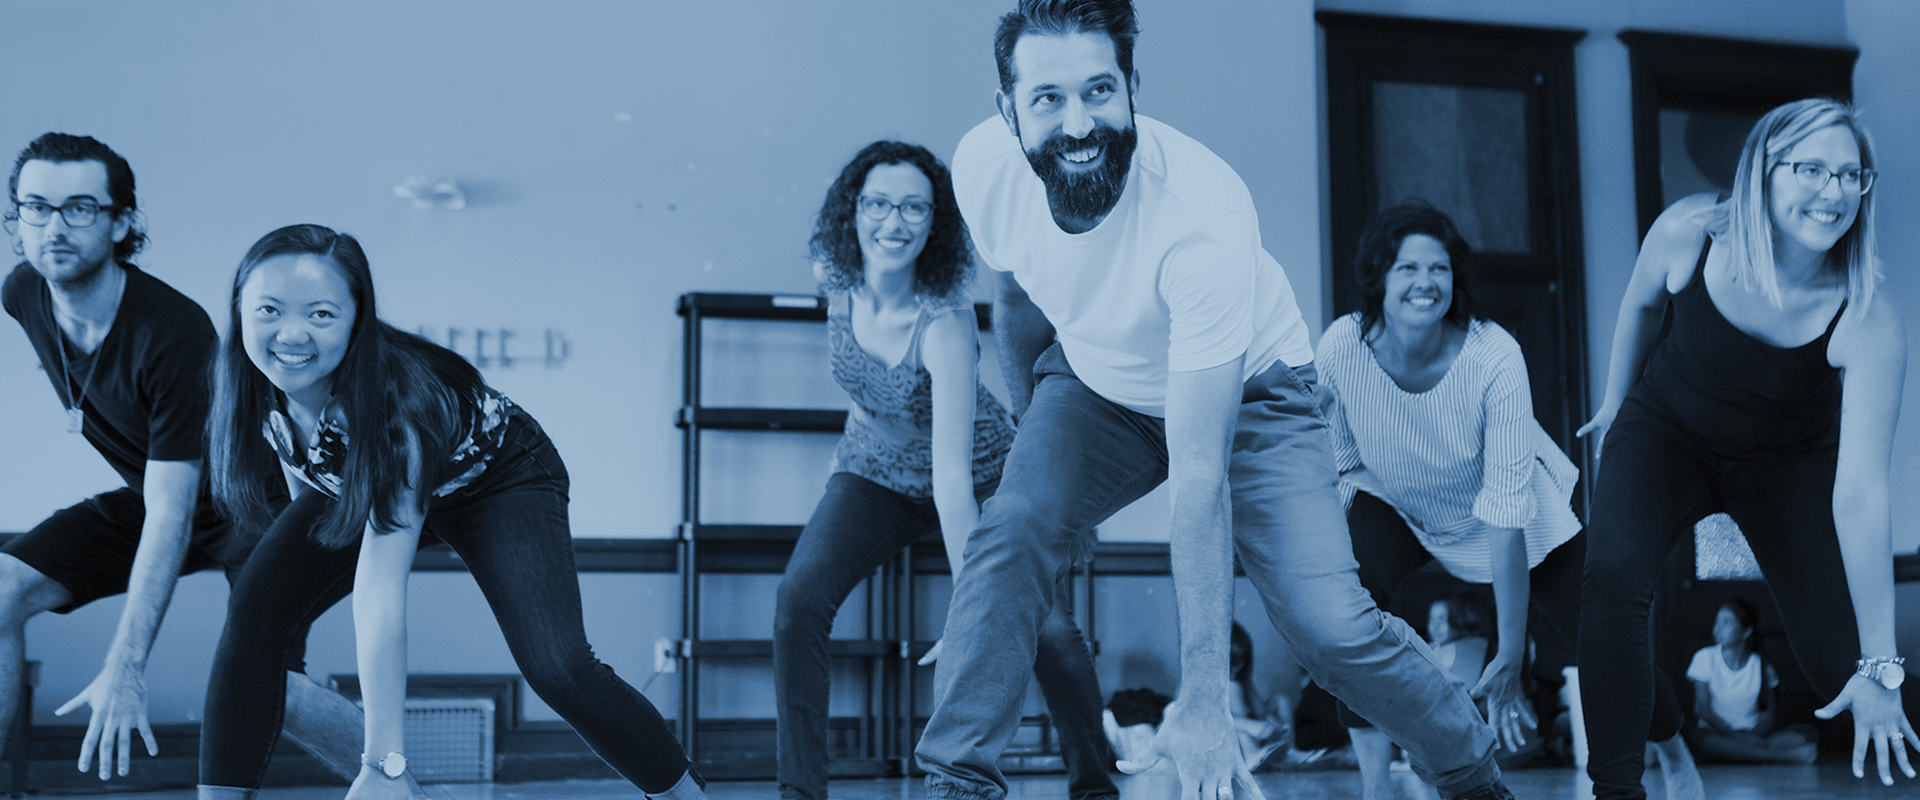 Publicity photo from Improv Families